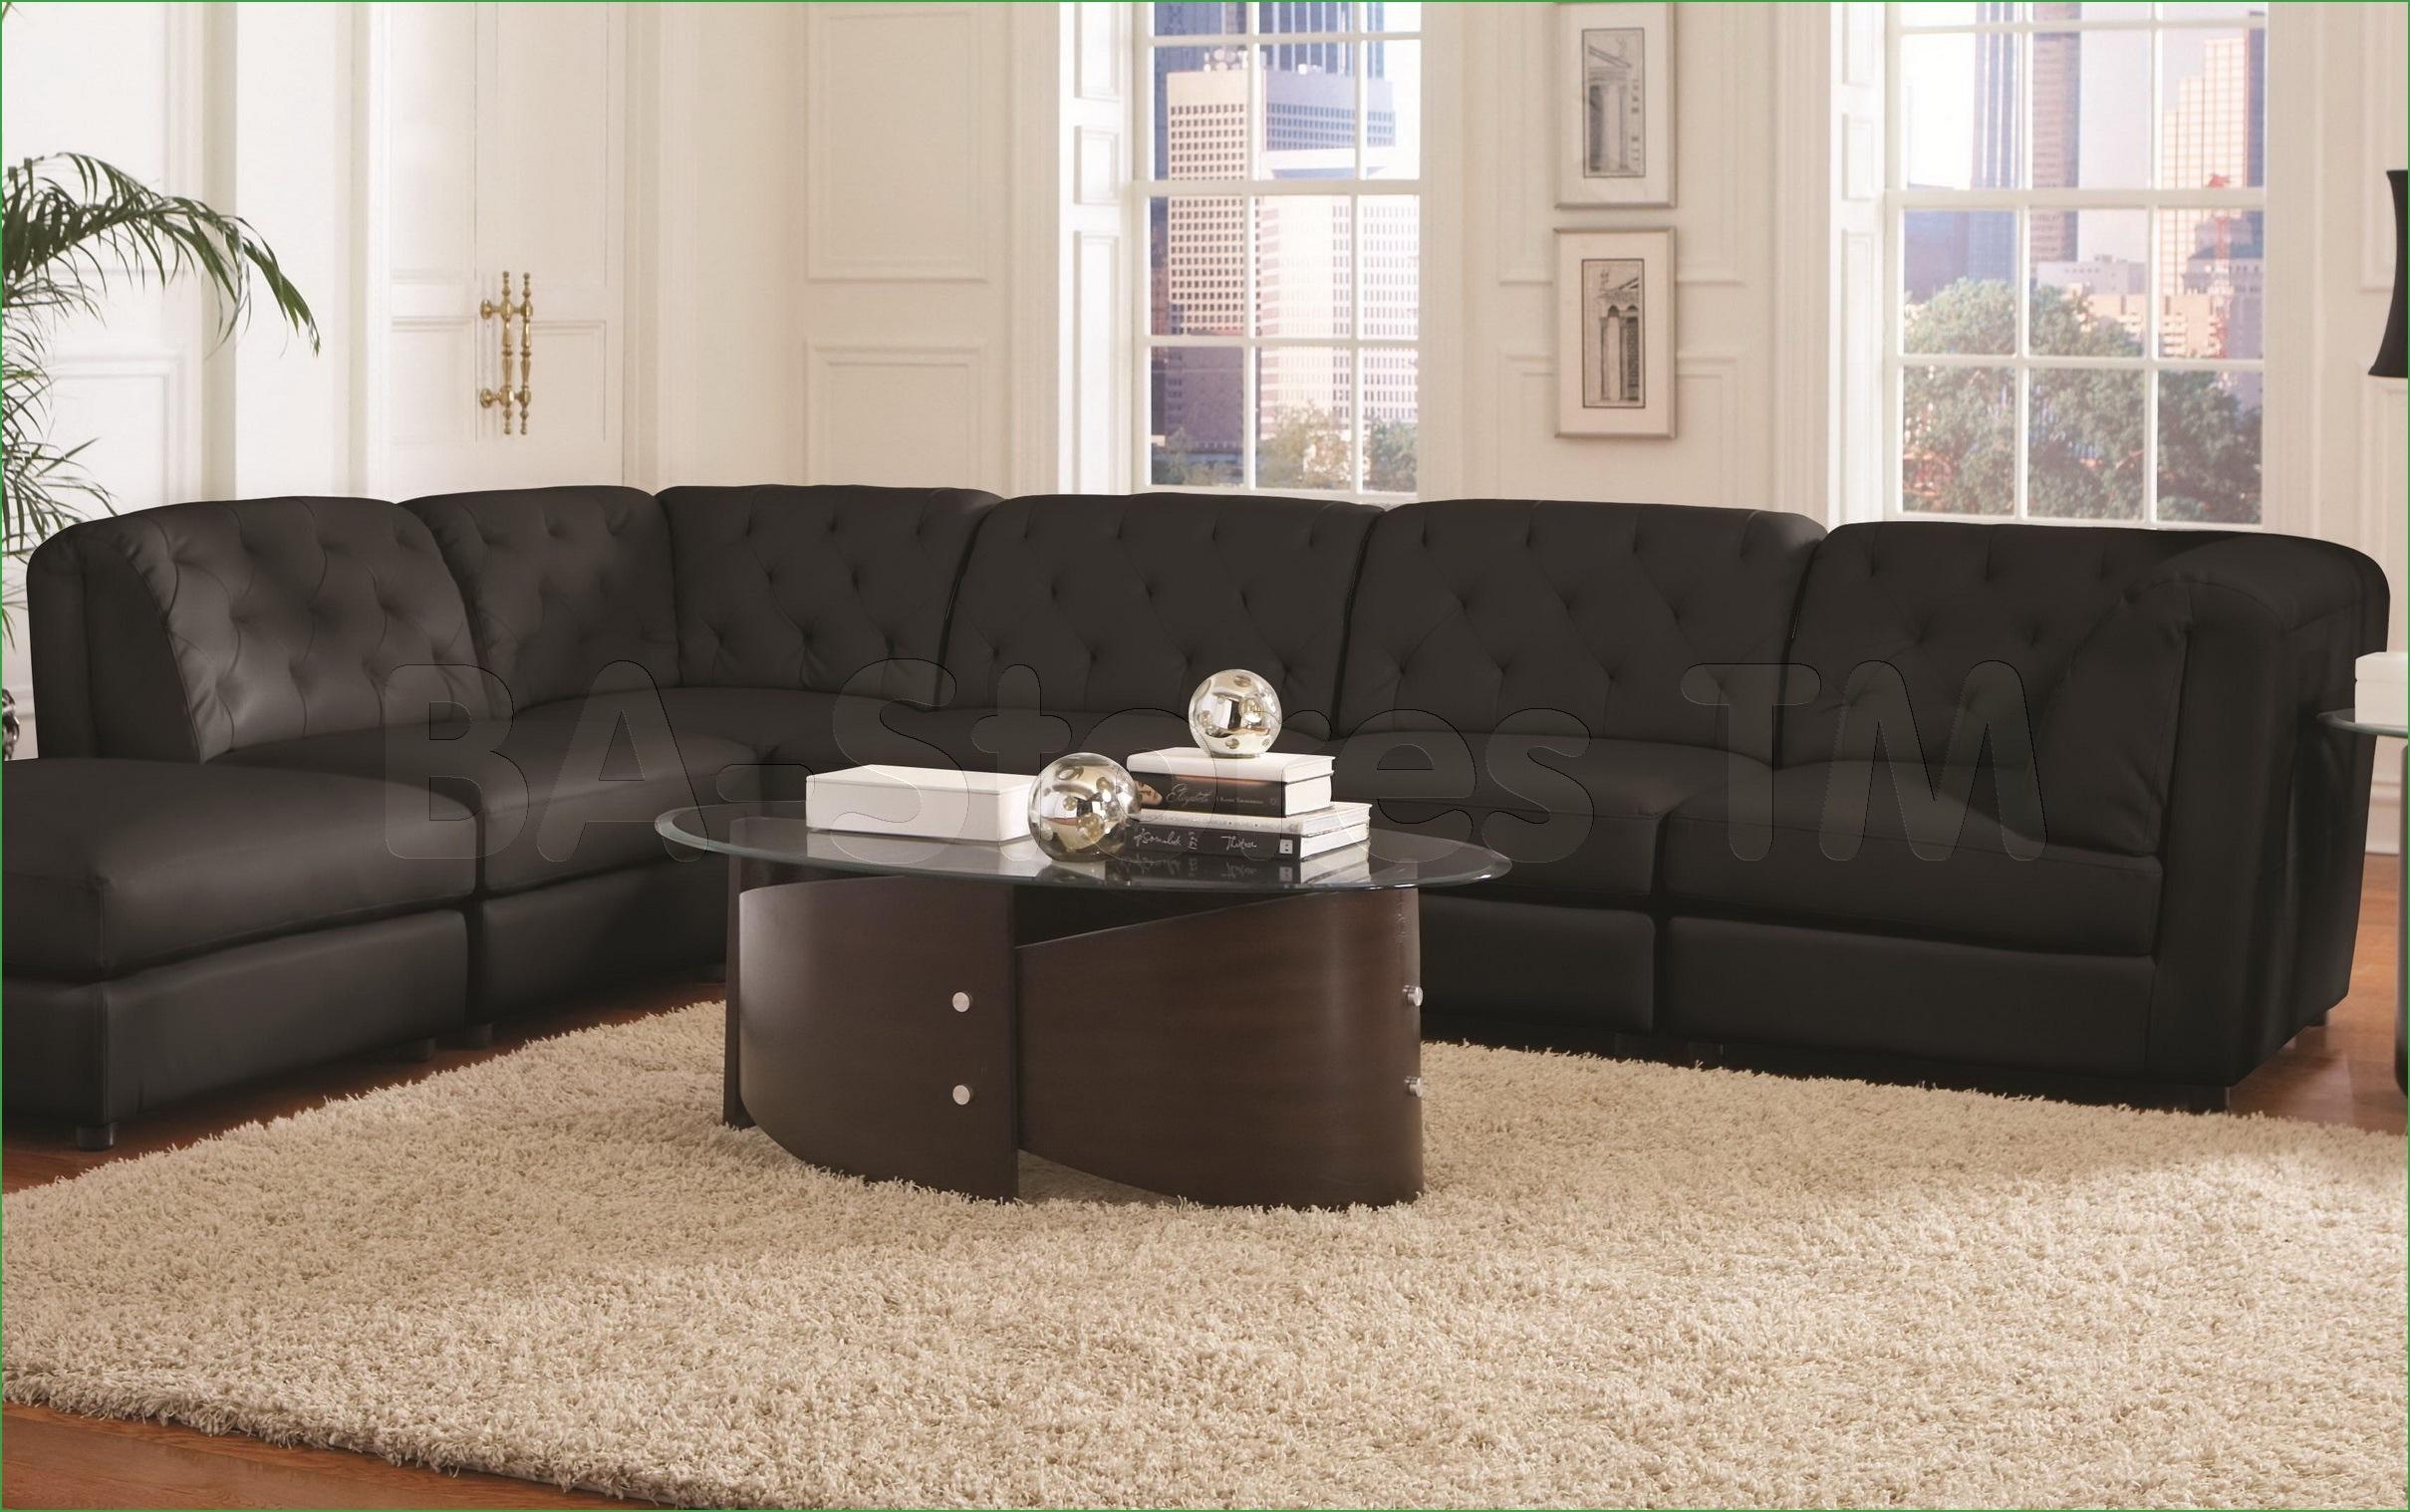 Sofa : Queen Sofa Sleeper Sectional Microfiber Decoration Ideas For Queen Sofa Sleeper Sectional Microfiber (Image 17 of 20)